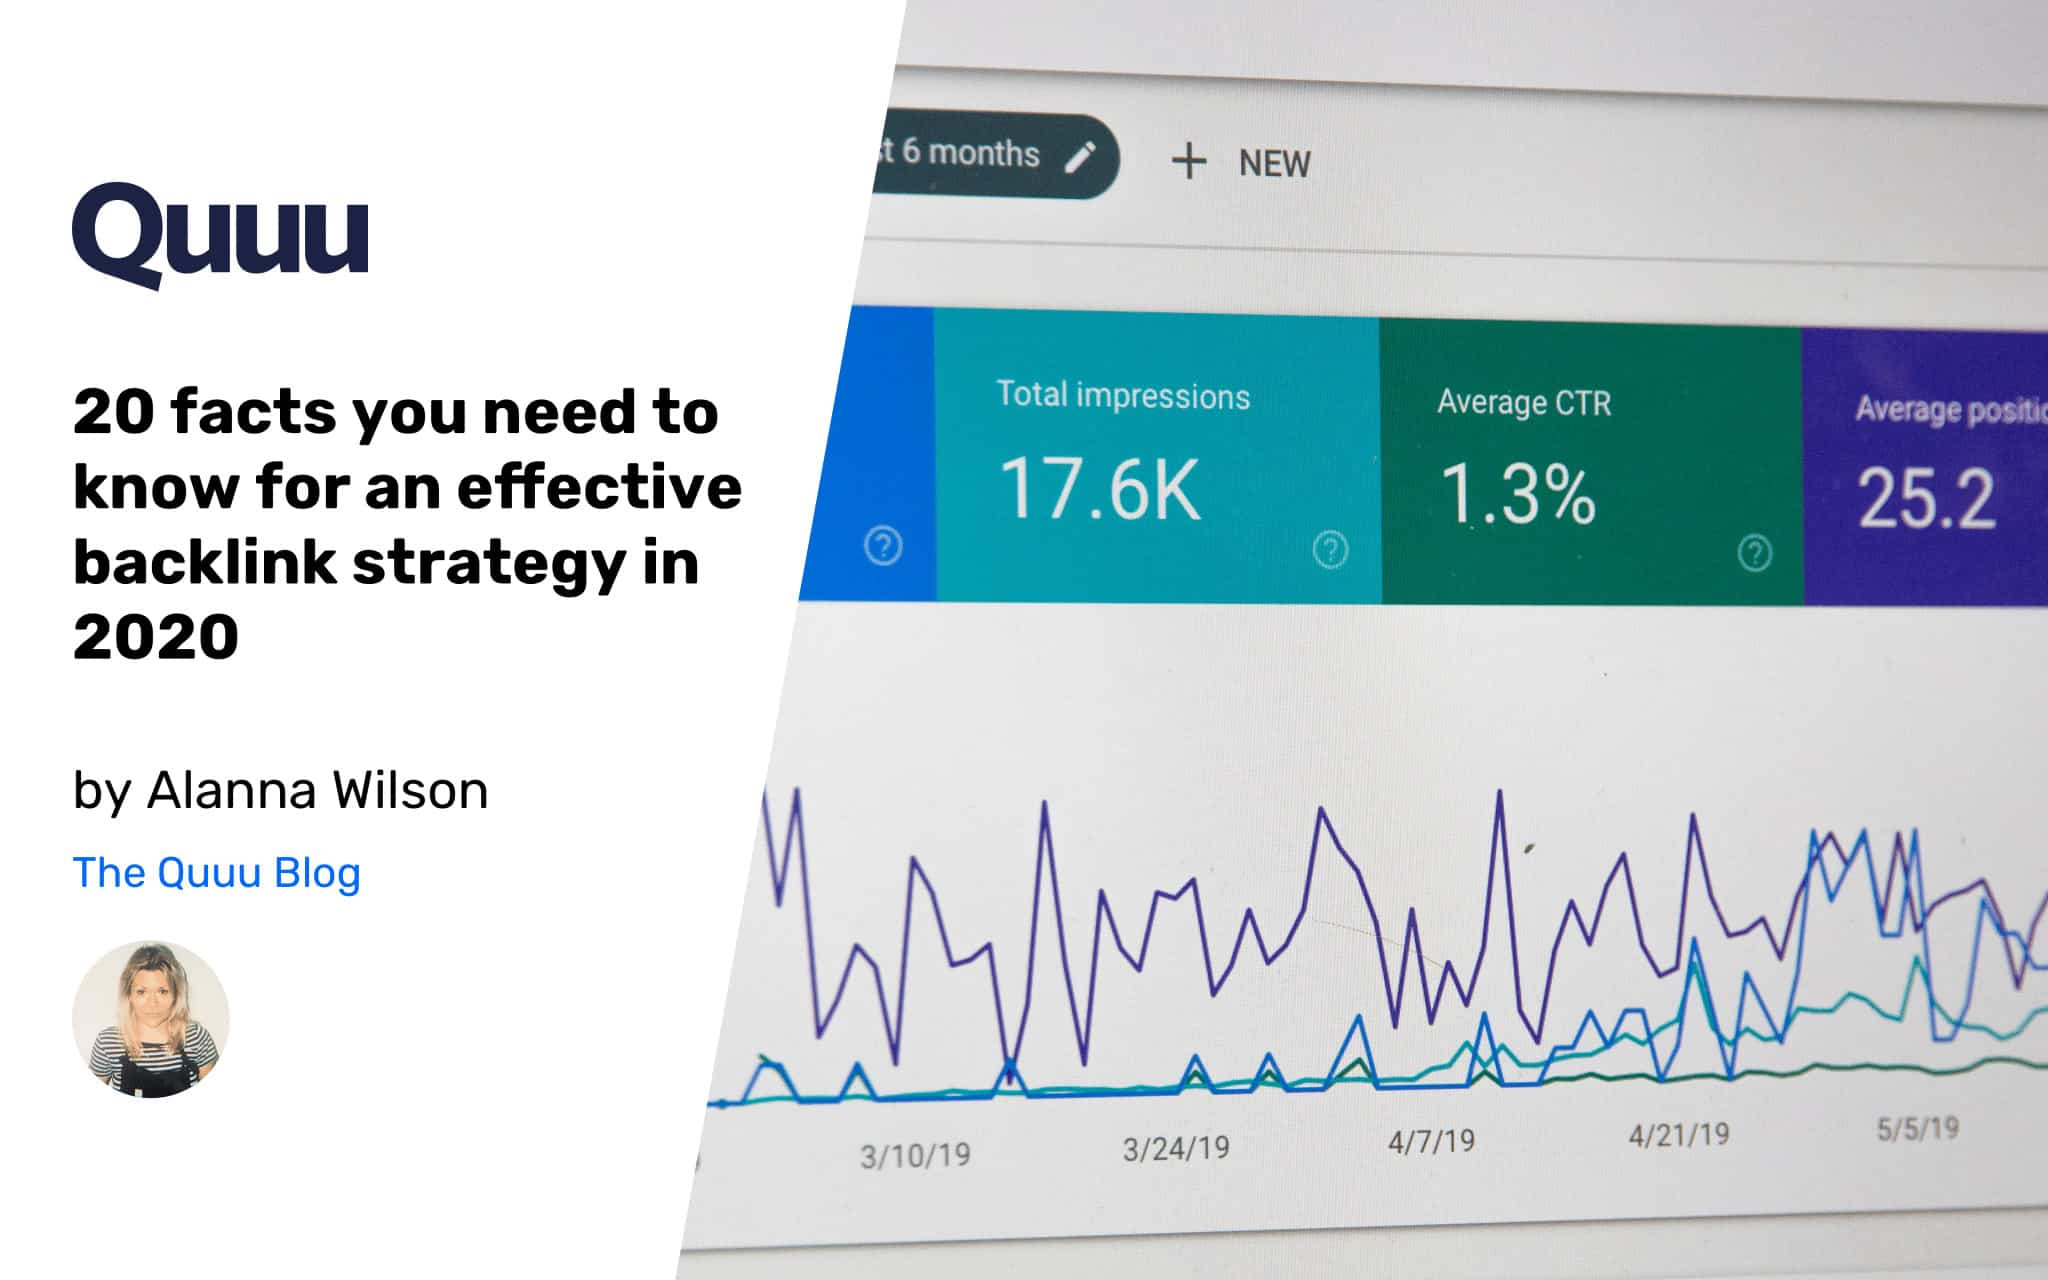 20 facts you need to know for an effective backlink strategy in 2020